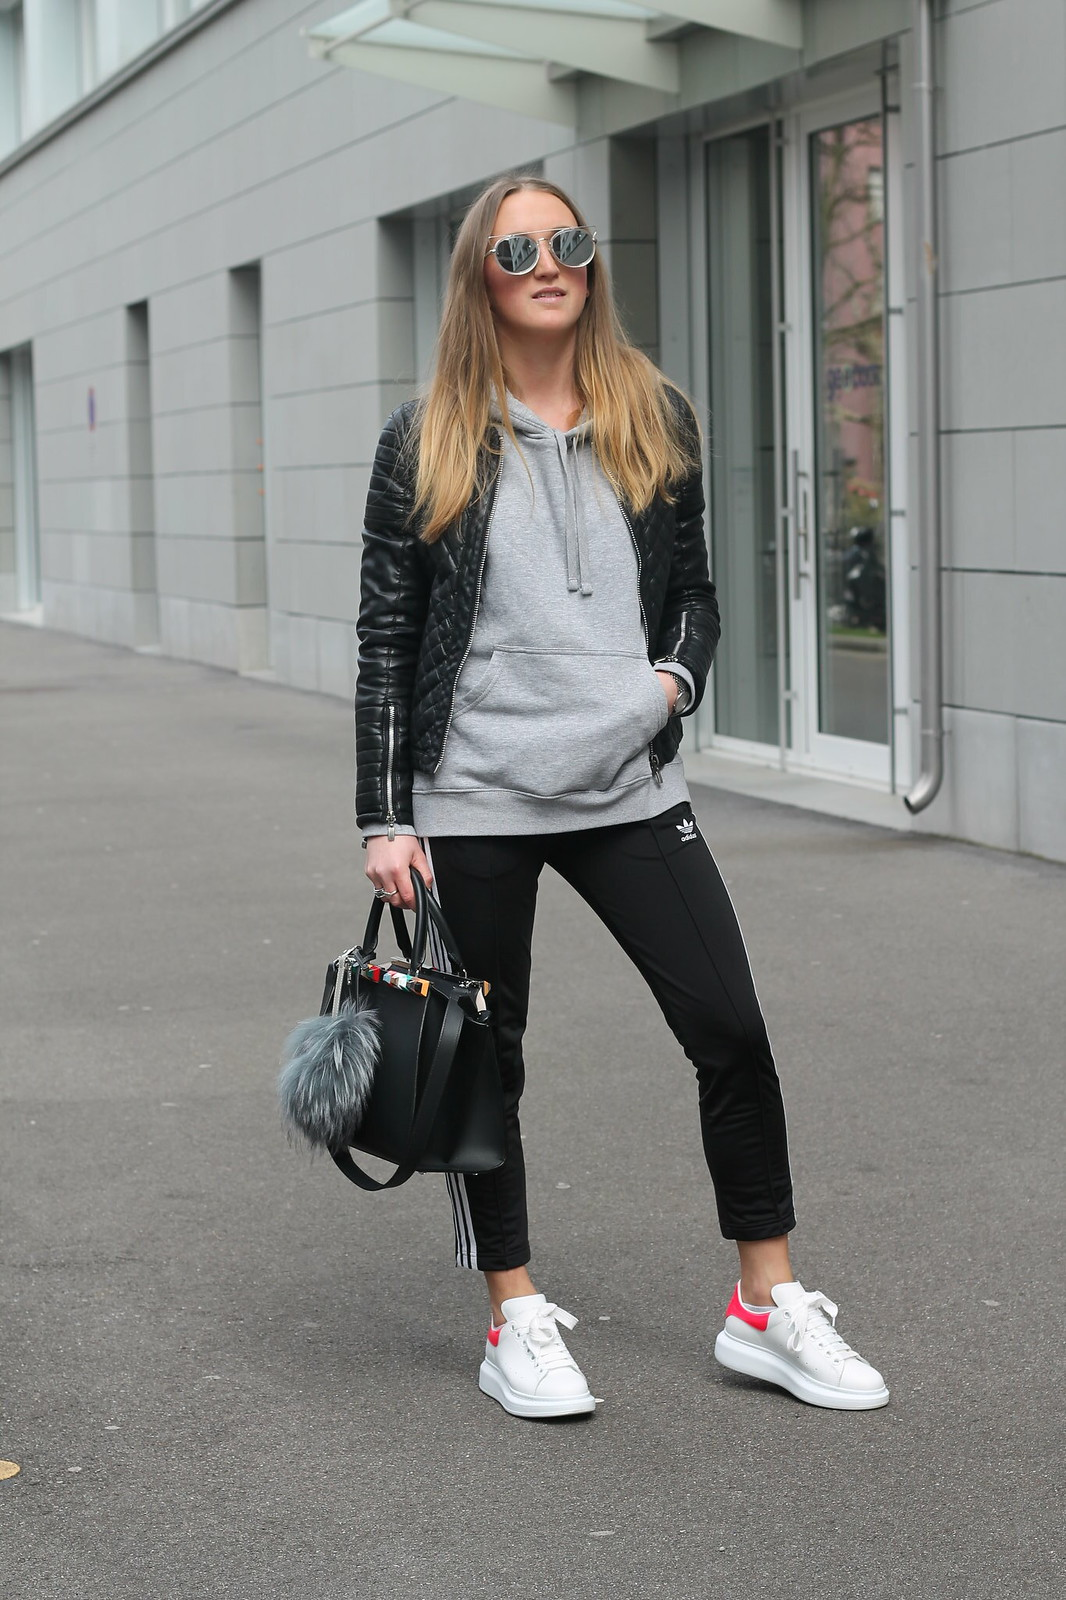 jogging-pants-and-alexander-mcqueen-sneakers-whole-outfit-wiebkembg